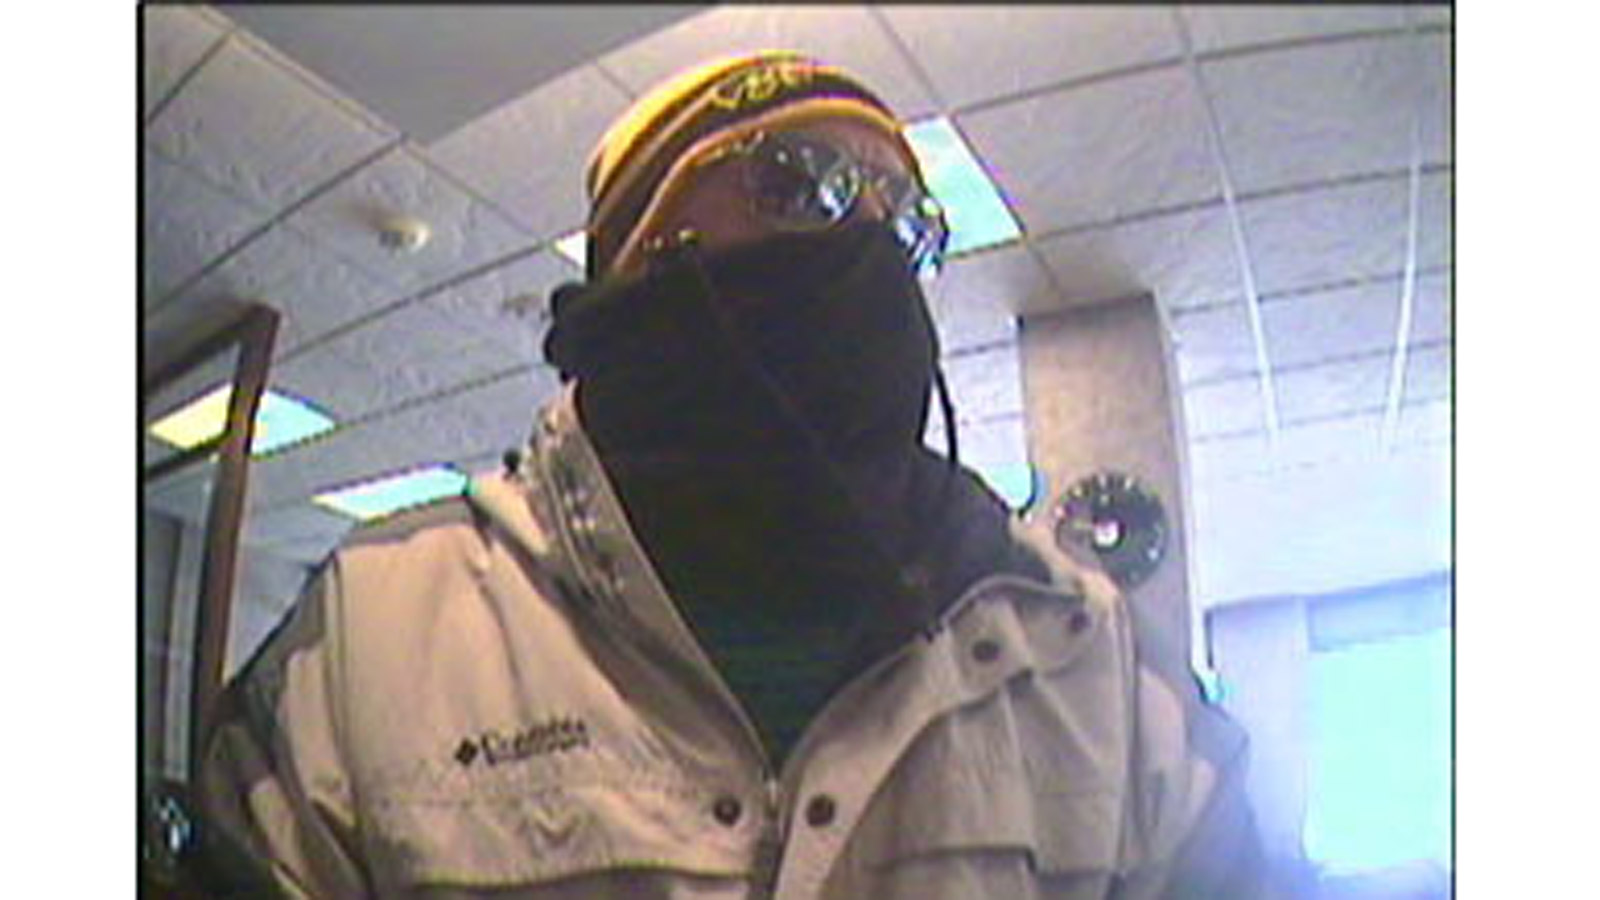 The FirstBank robbery suspect on Feb. 4, 2014 (credit: Boulder Police)